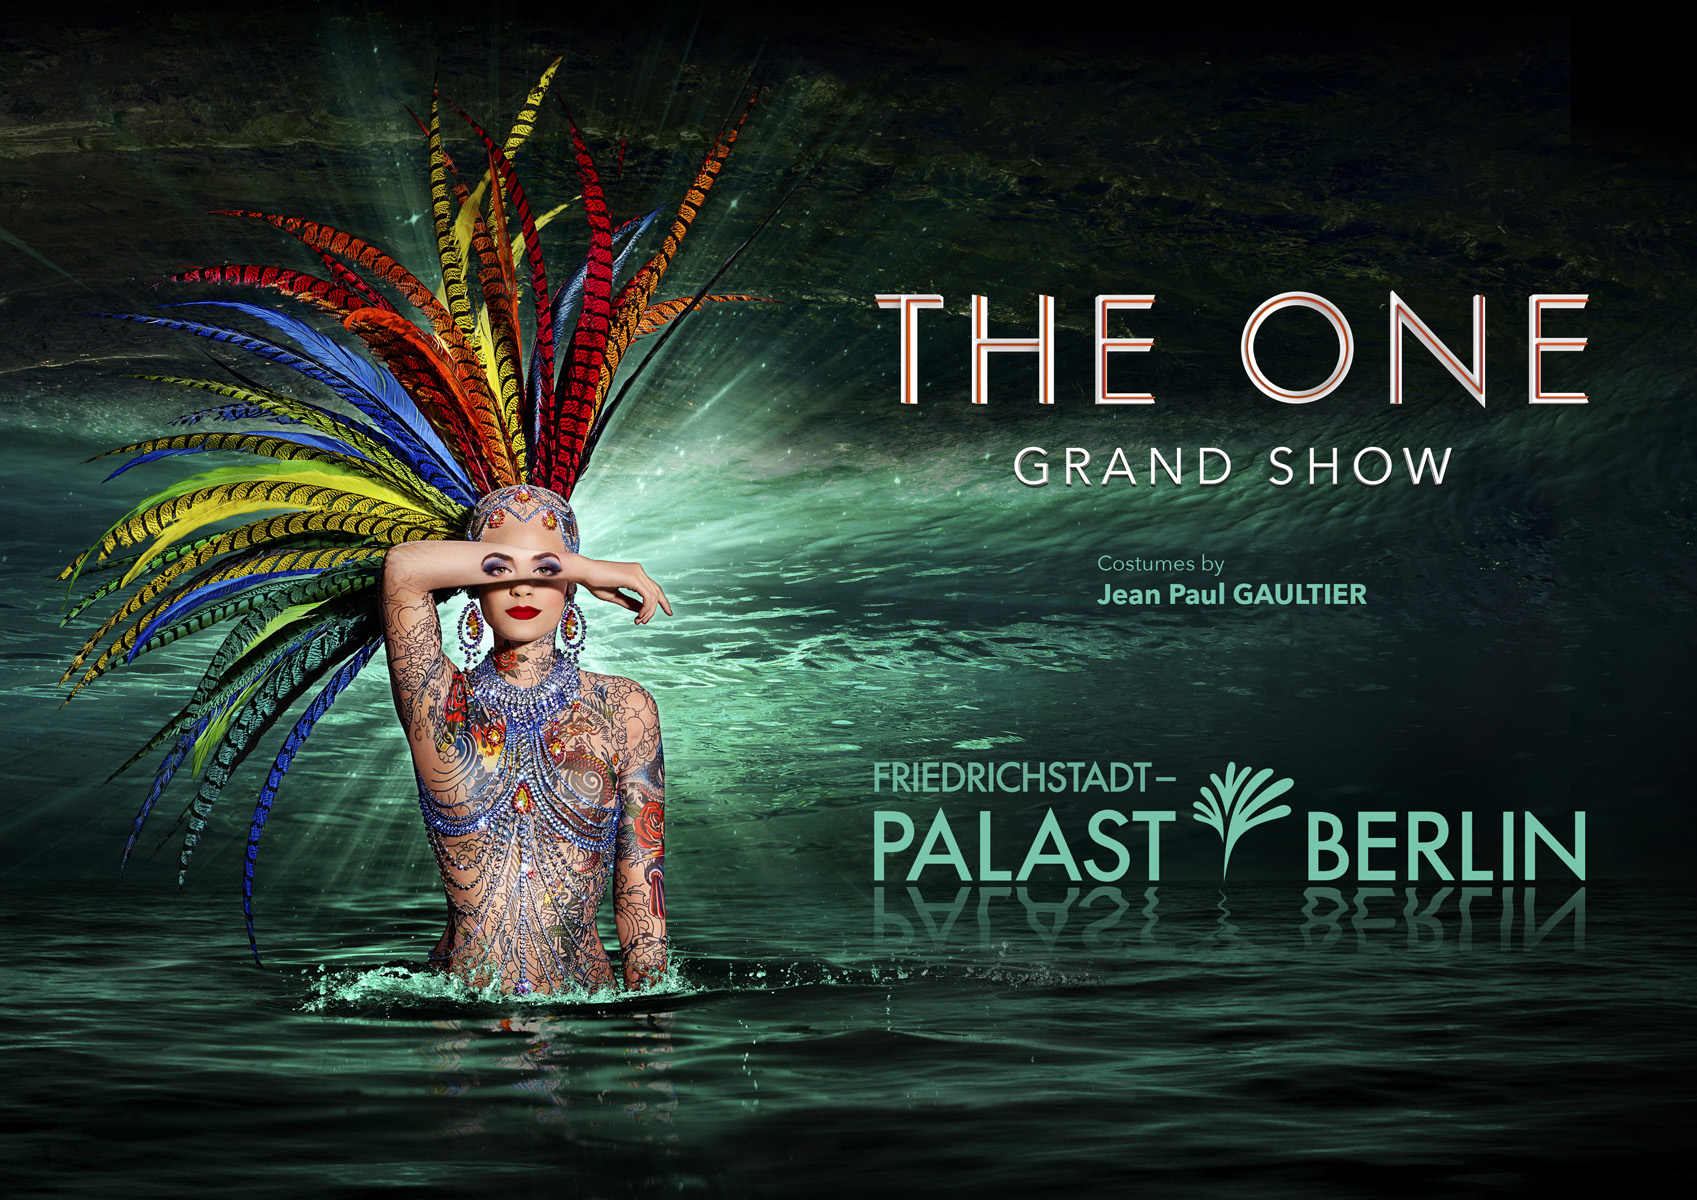 THE ONE Grand Show